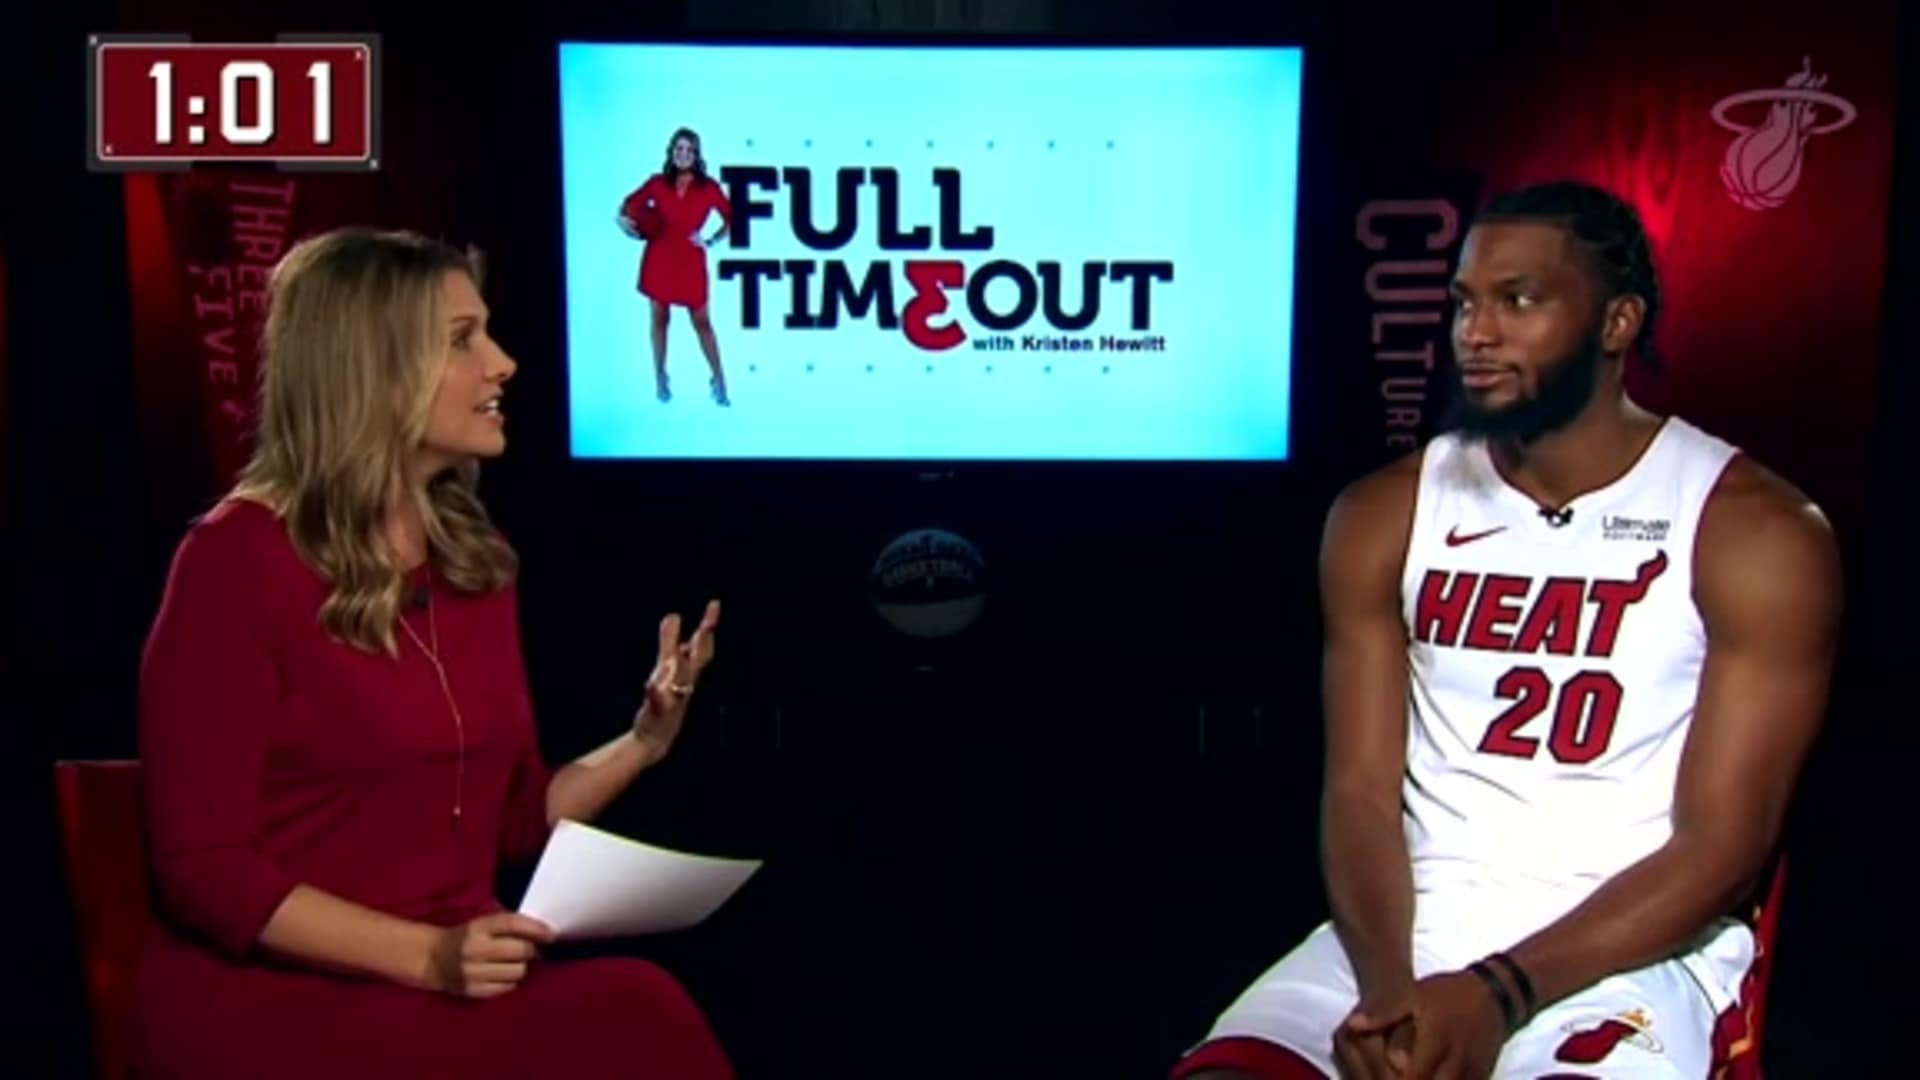 Full Timeout: Justise Winslow